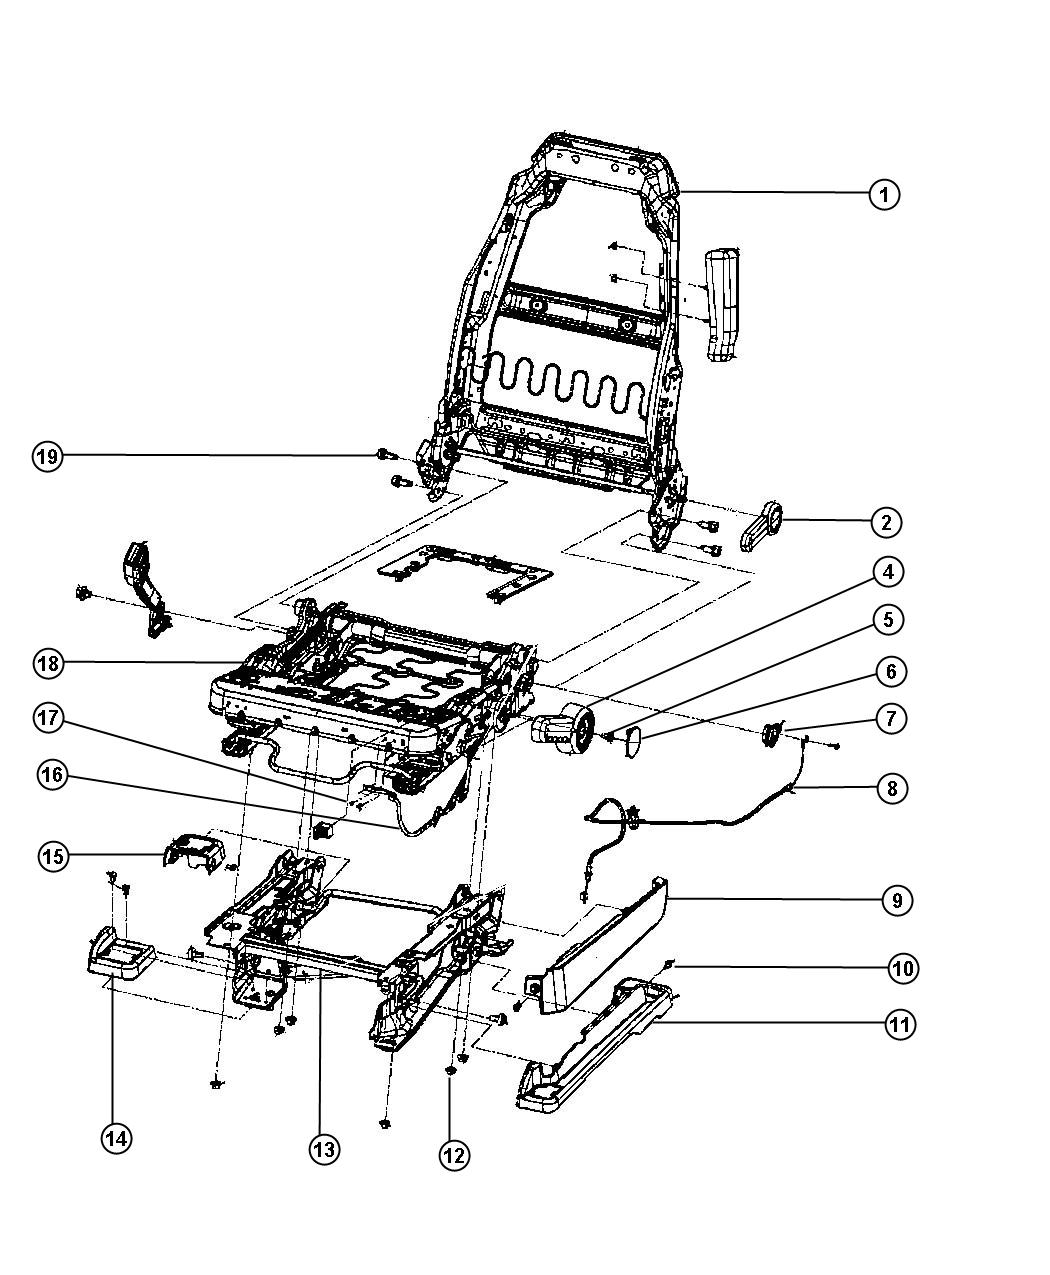 2012 jk jeep seat parts diagram